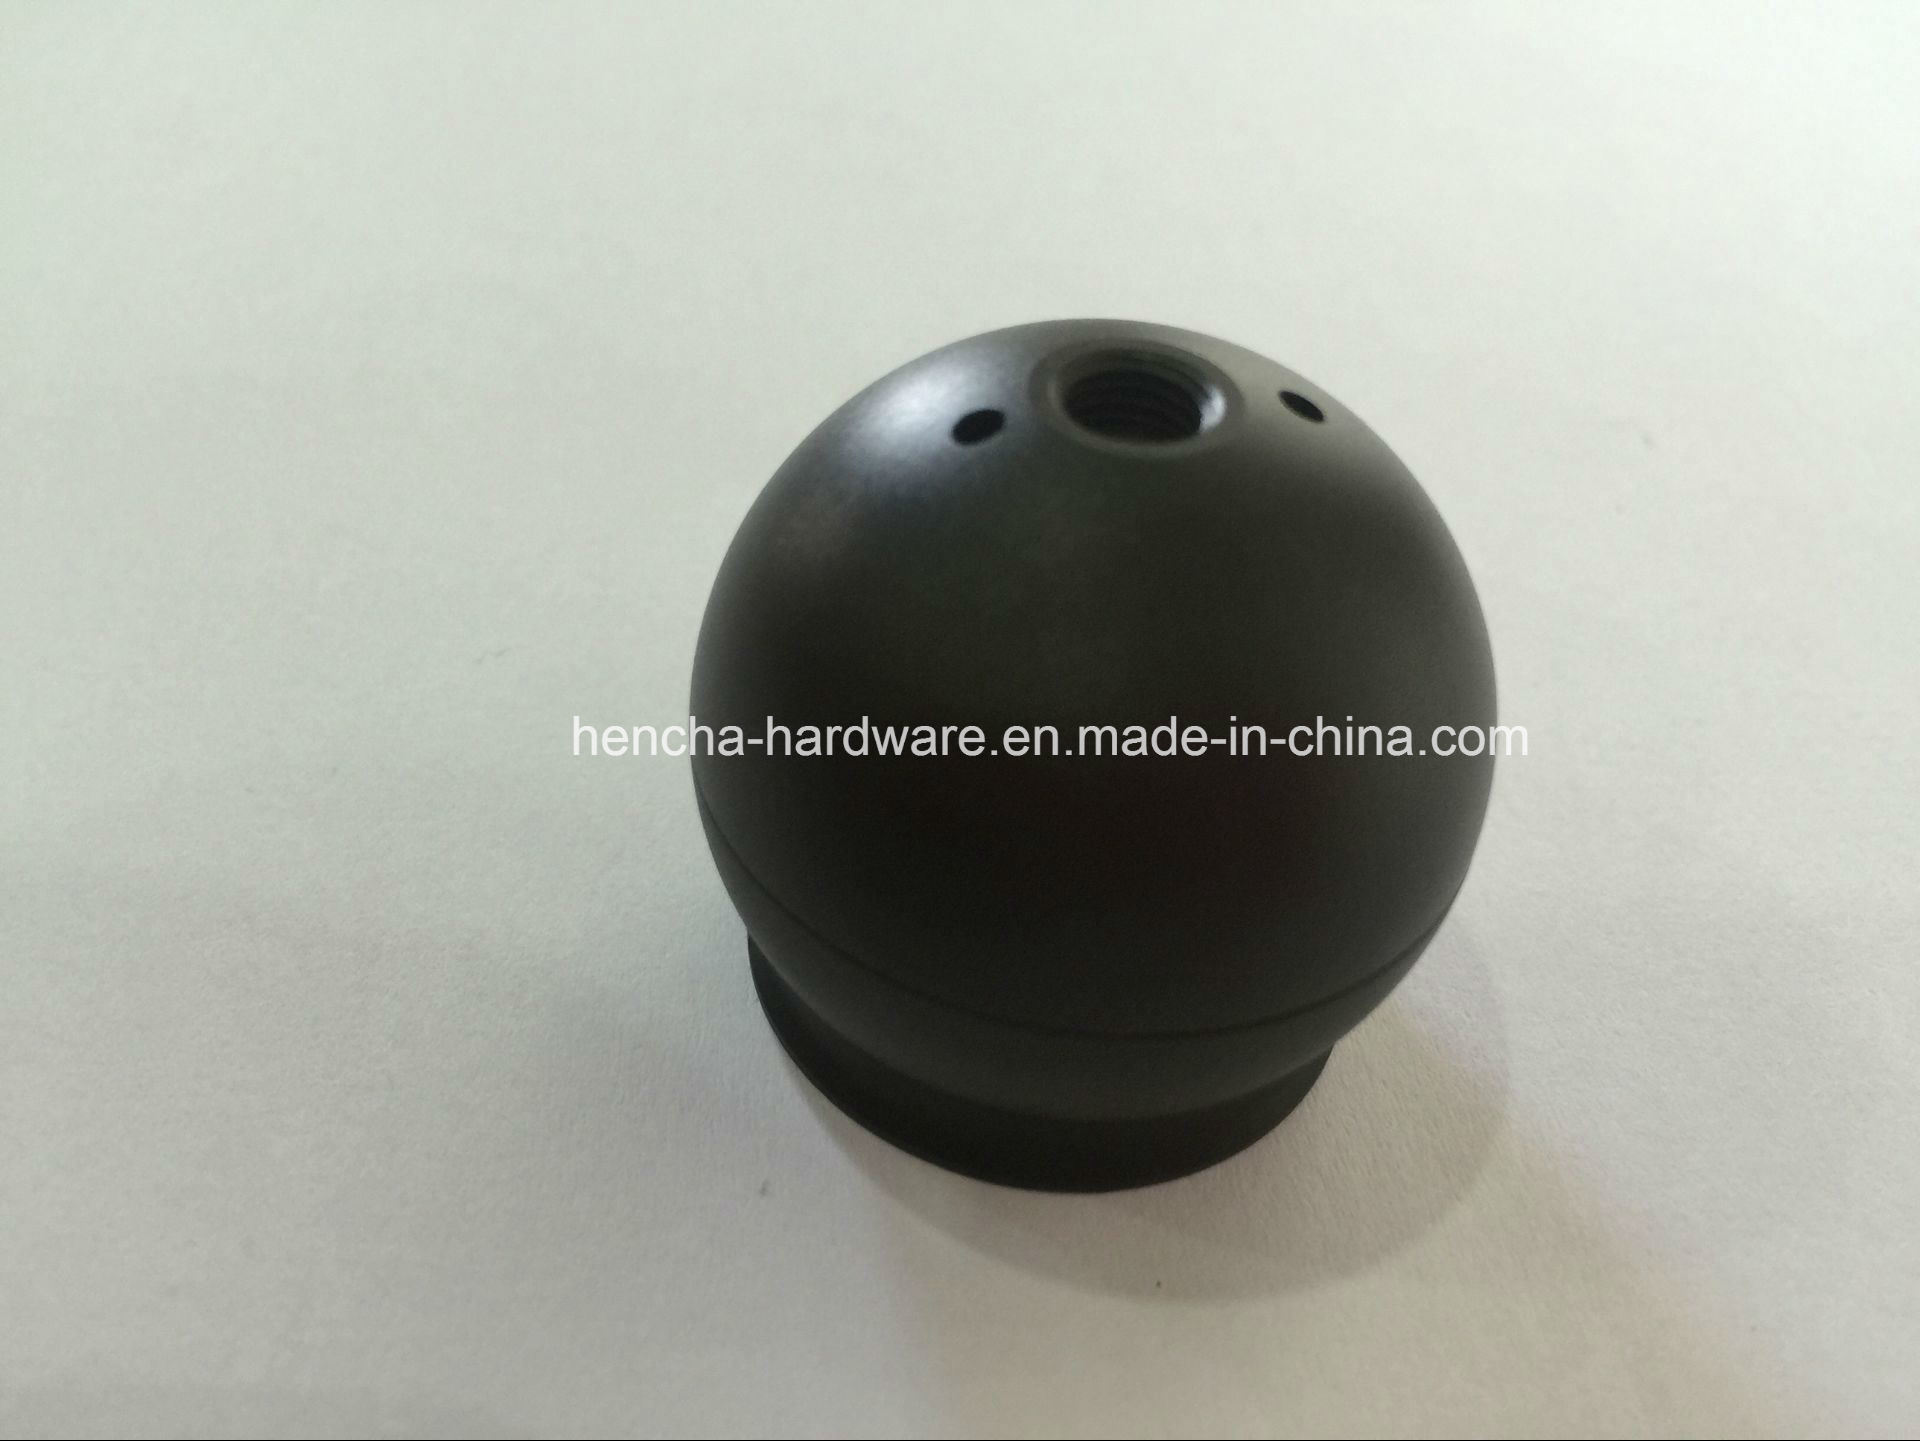 CNC Machining Part Aluminum Housing for Rear-View Mirror